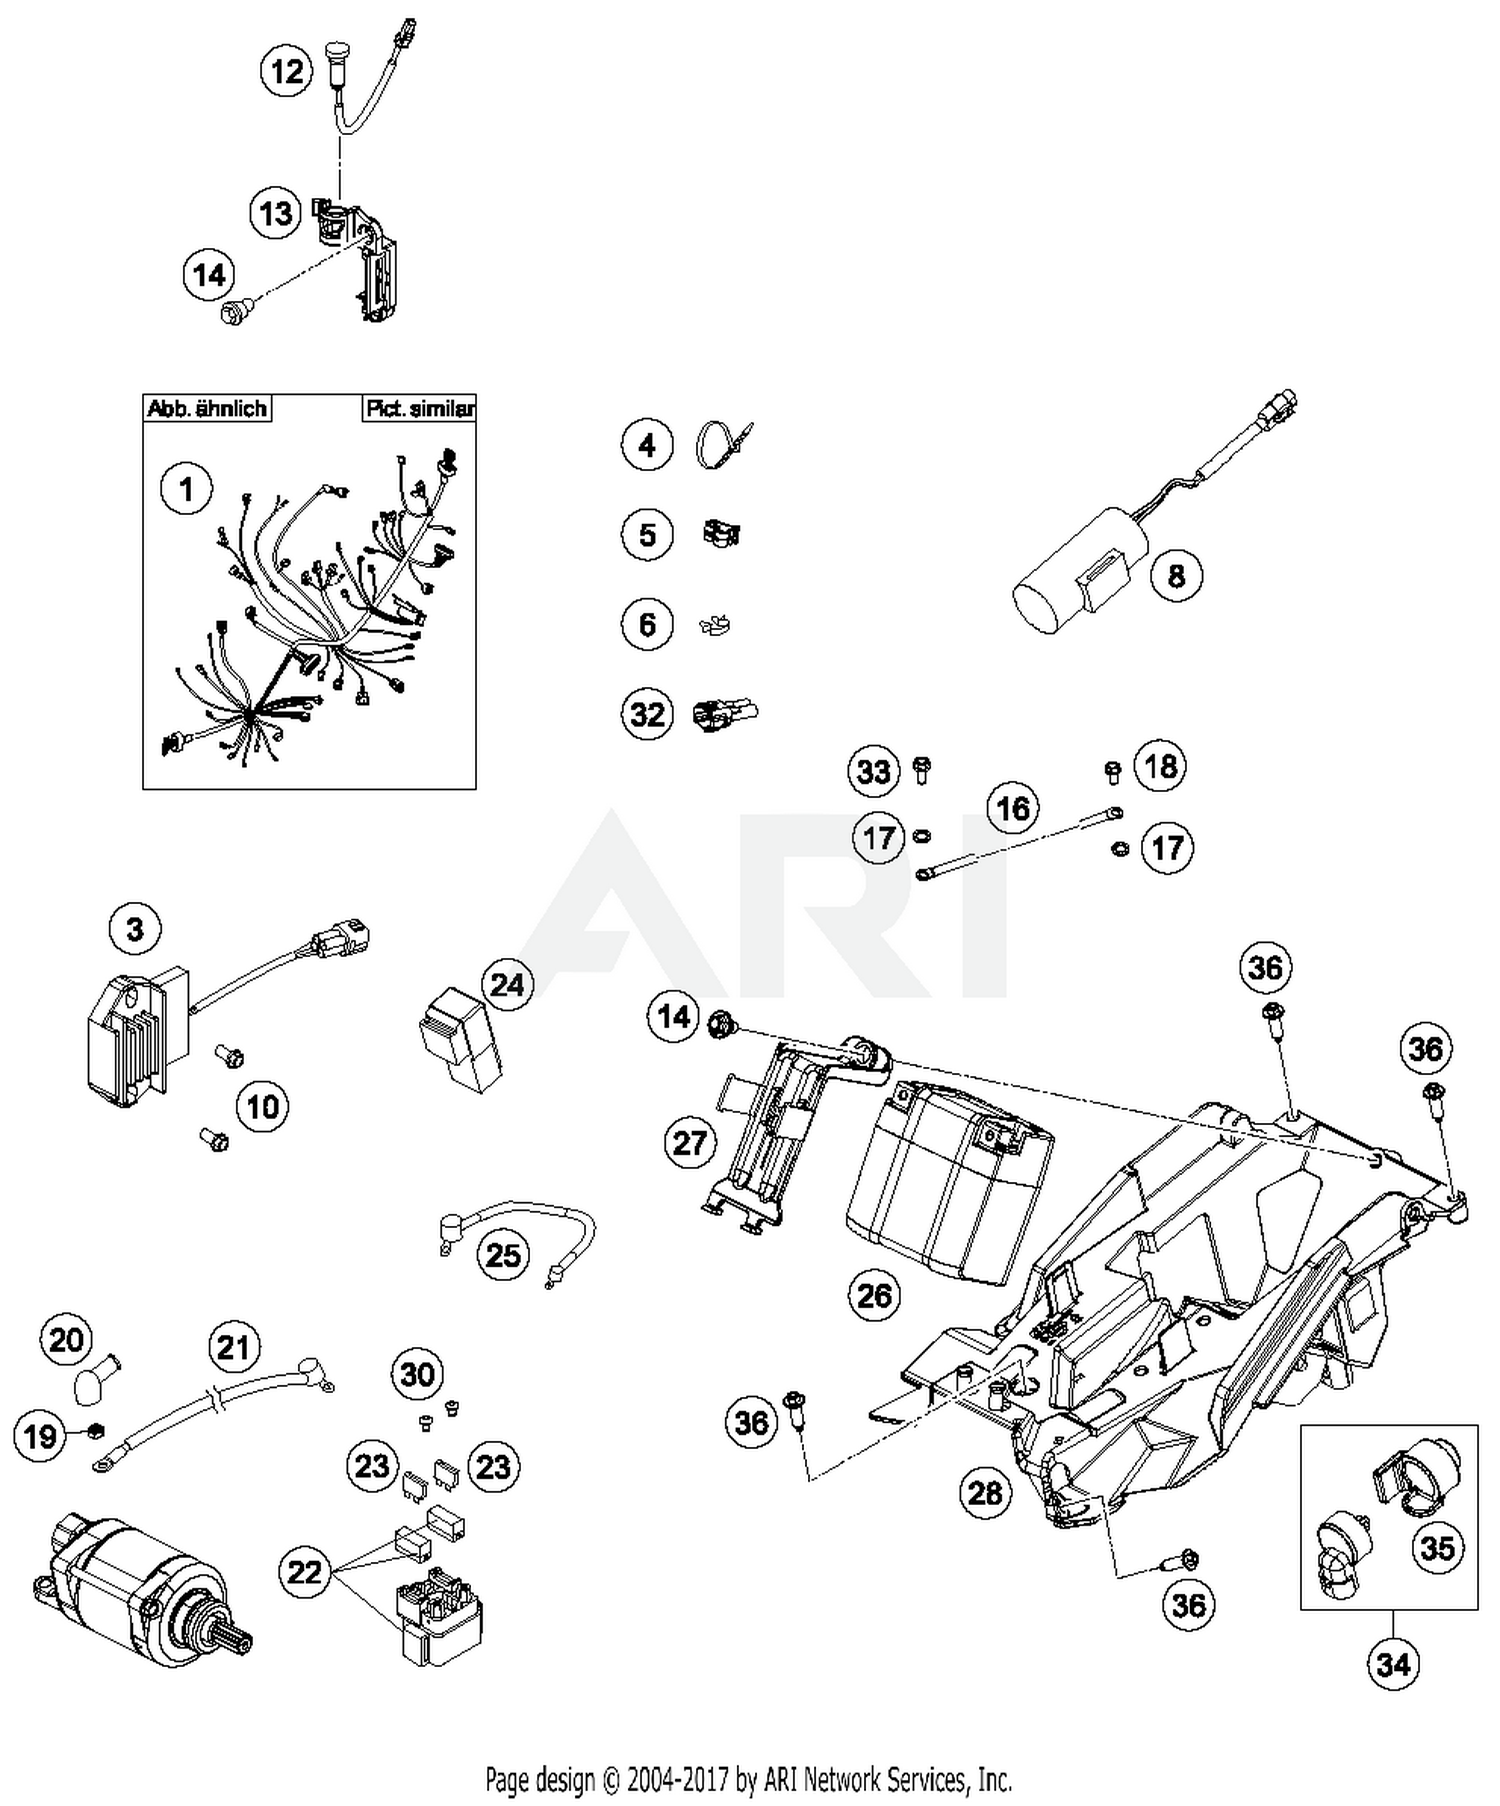 Ktm 83013026000 Best Price On Cable Guide Parts At 2013 450 Xc W Wiring Diagram Part 5 Quantity Required 2